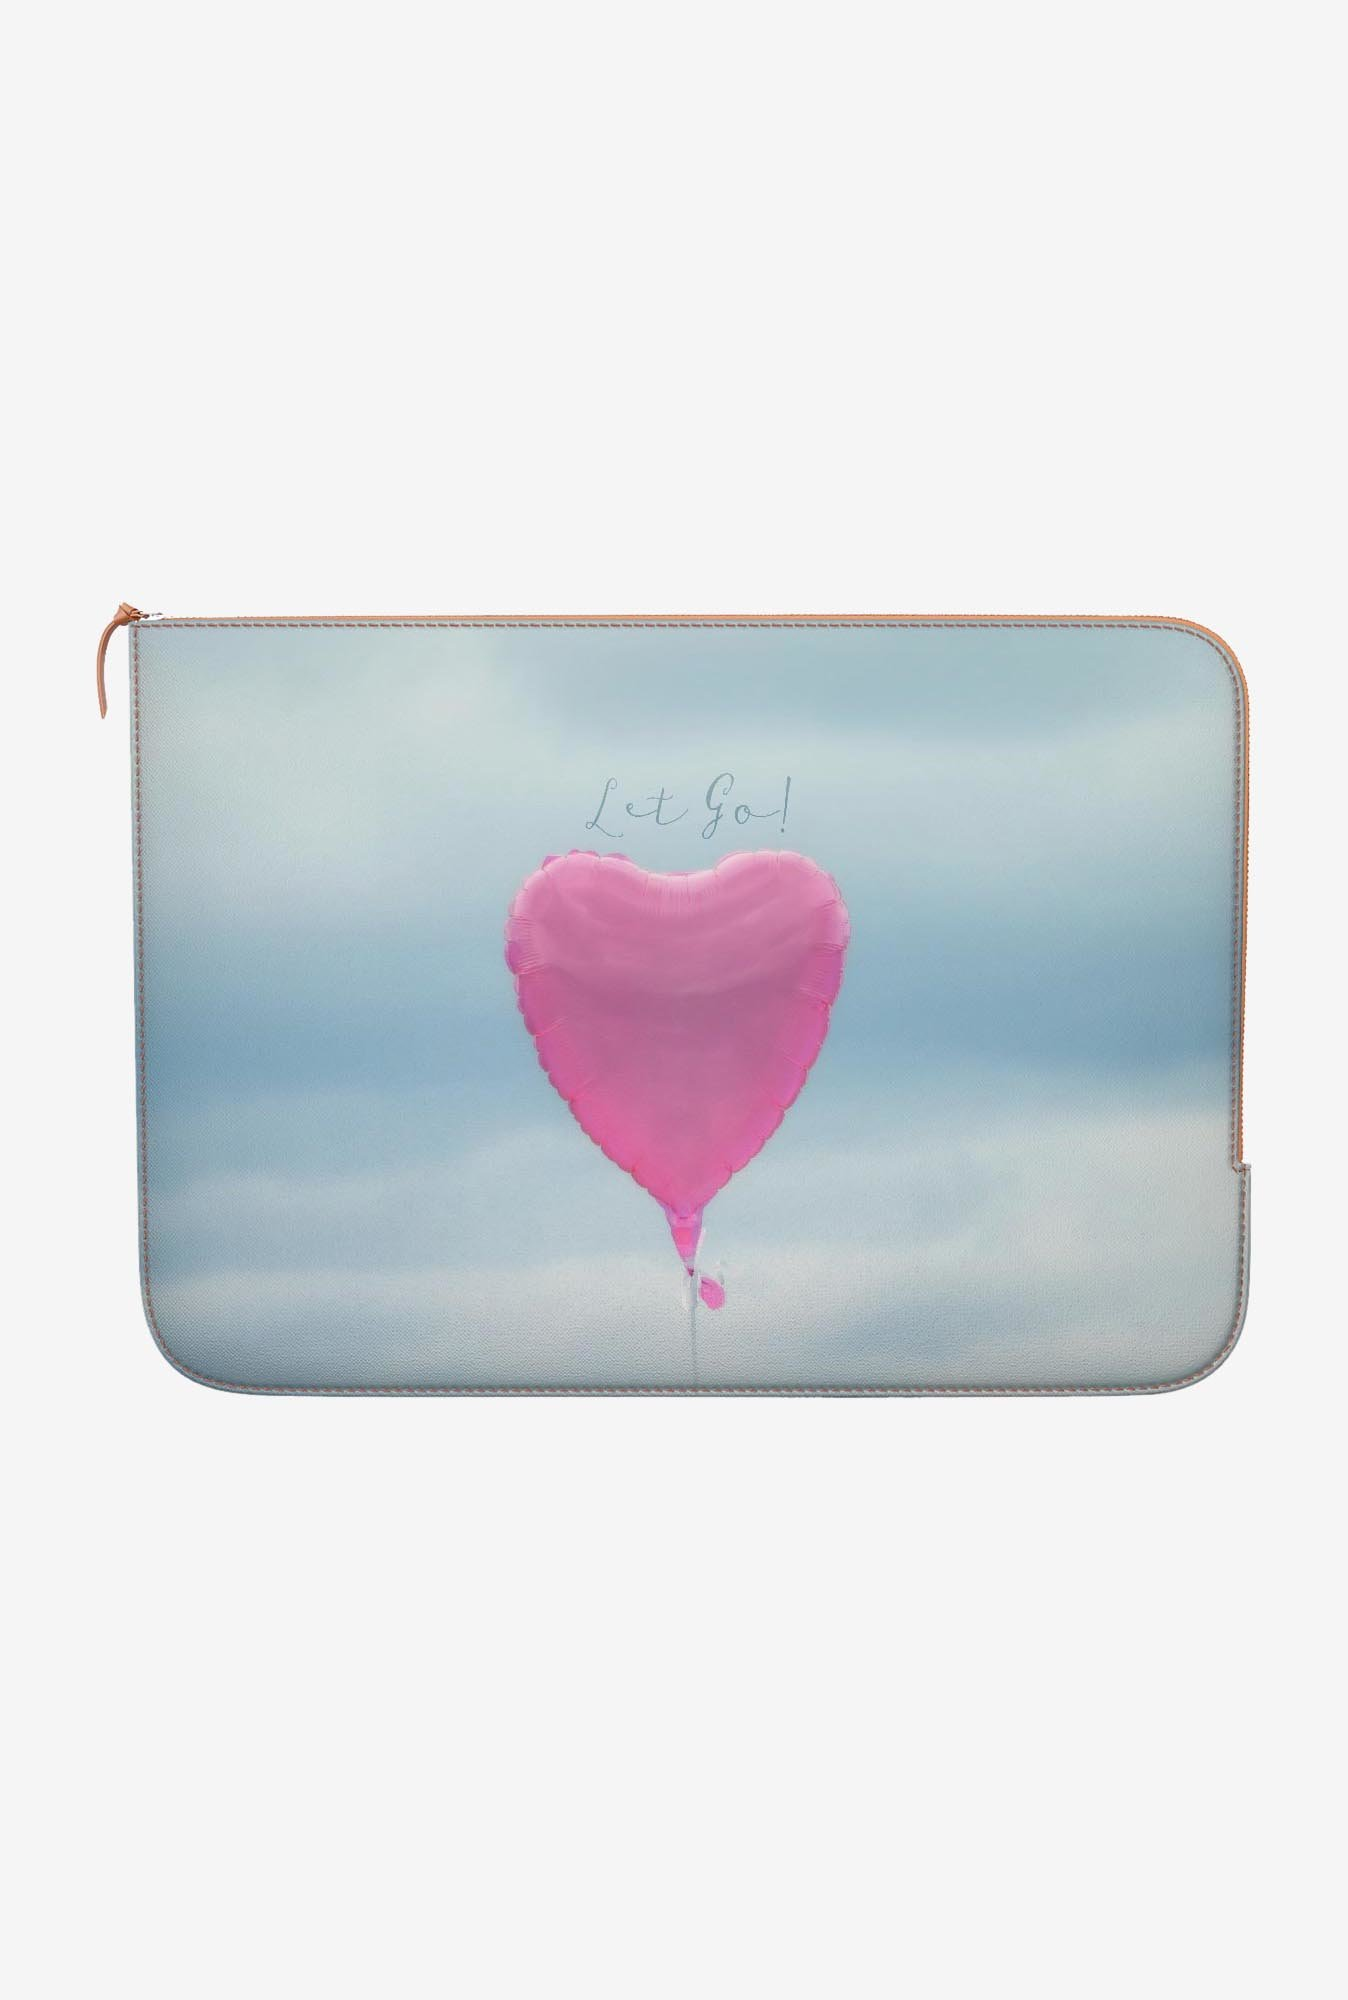 DailyObjects Let Go MacBook Pro 13 Zippered Sleeve